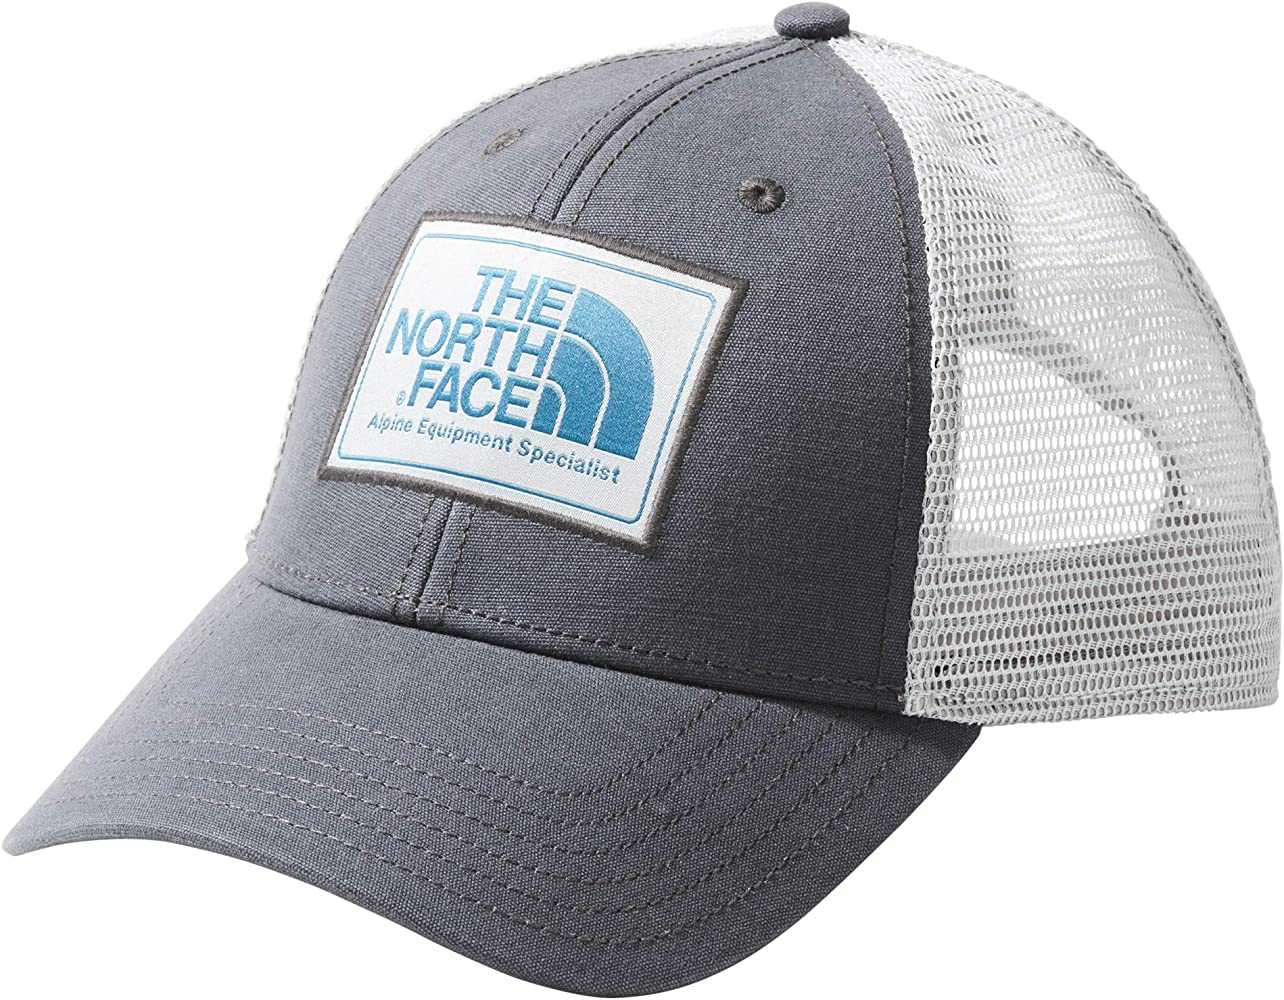 9dc66a62db94c4 The North Face Mudder Trucker Hat, Asphalt Grey/High Rise Grey/Crystal  Teal, Size OS at Amazon Men's Clothing store: